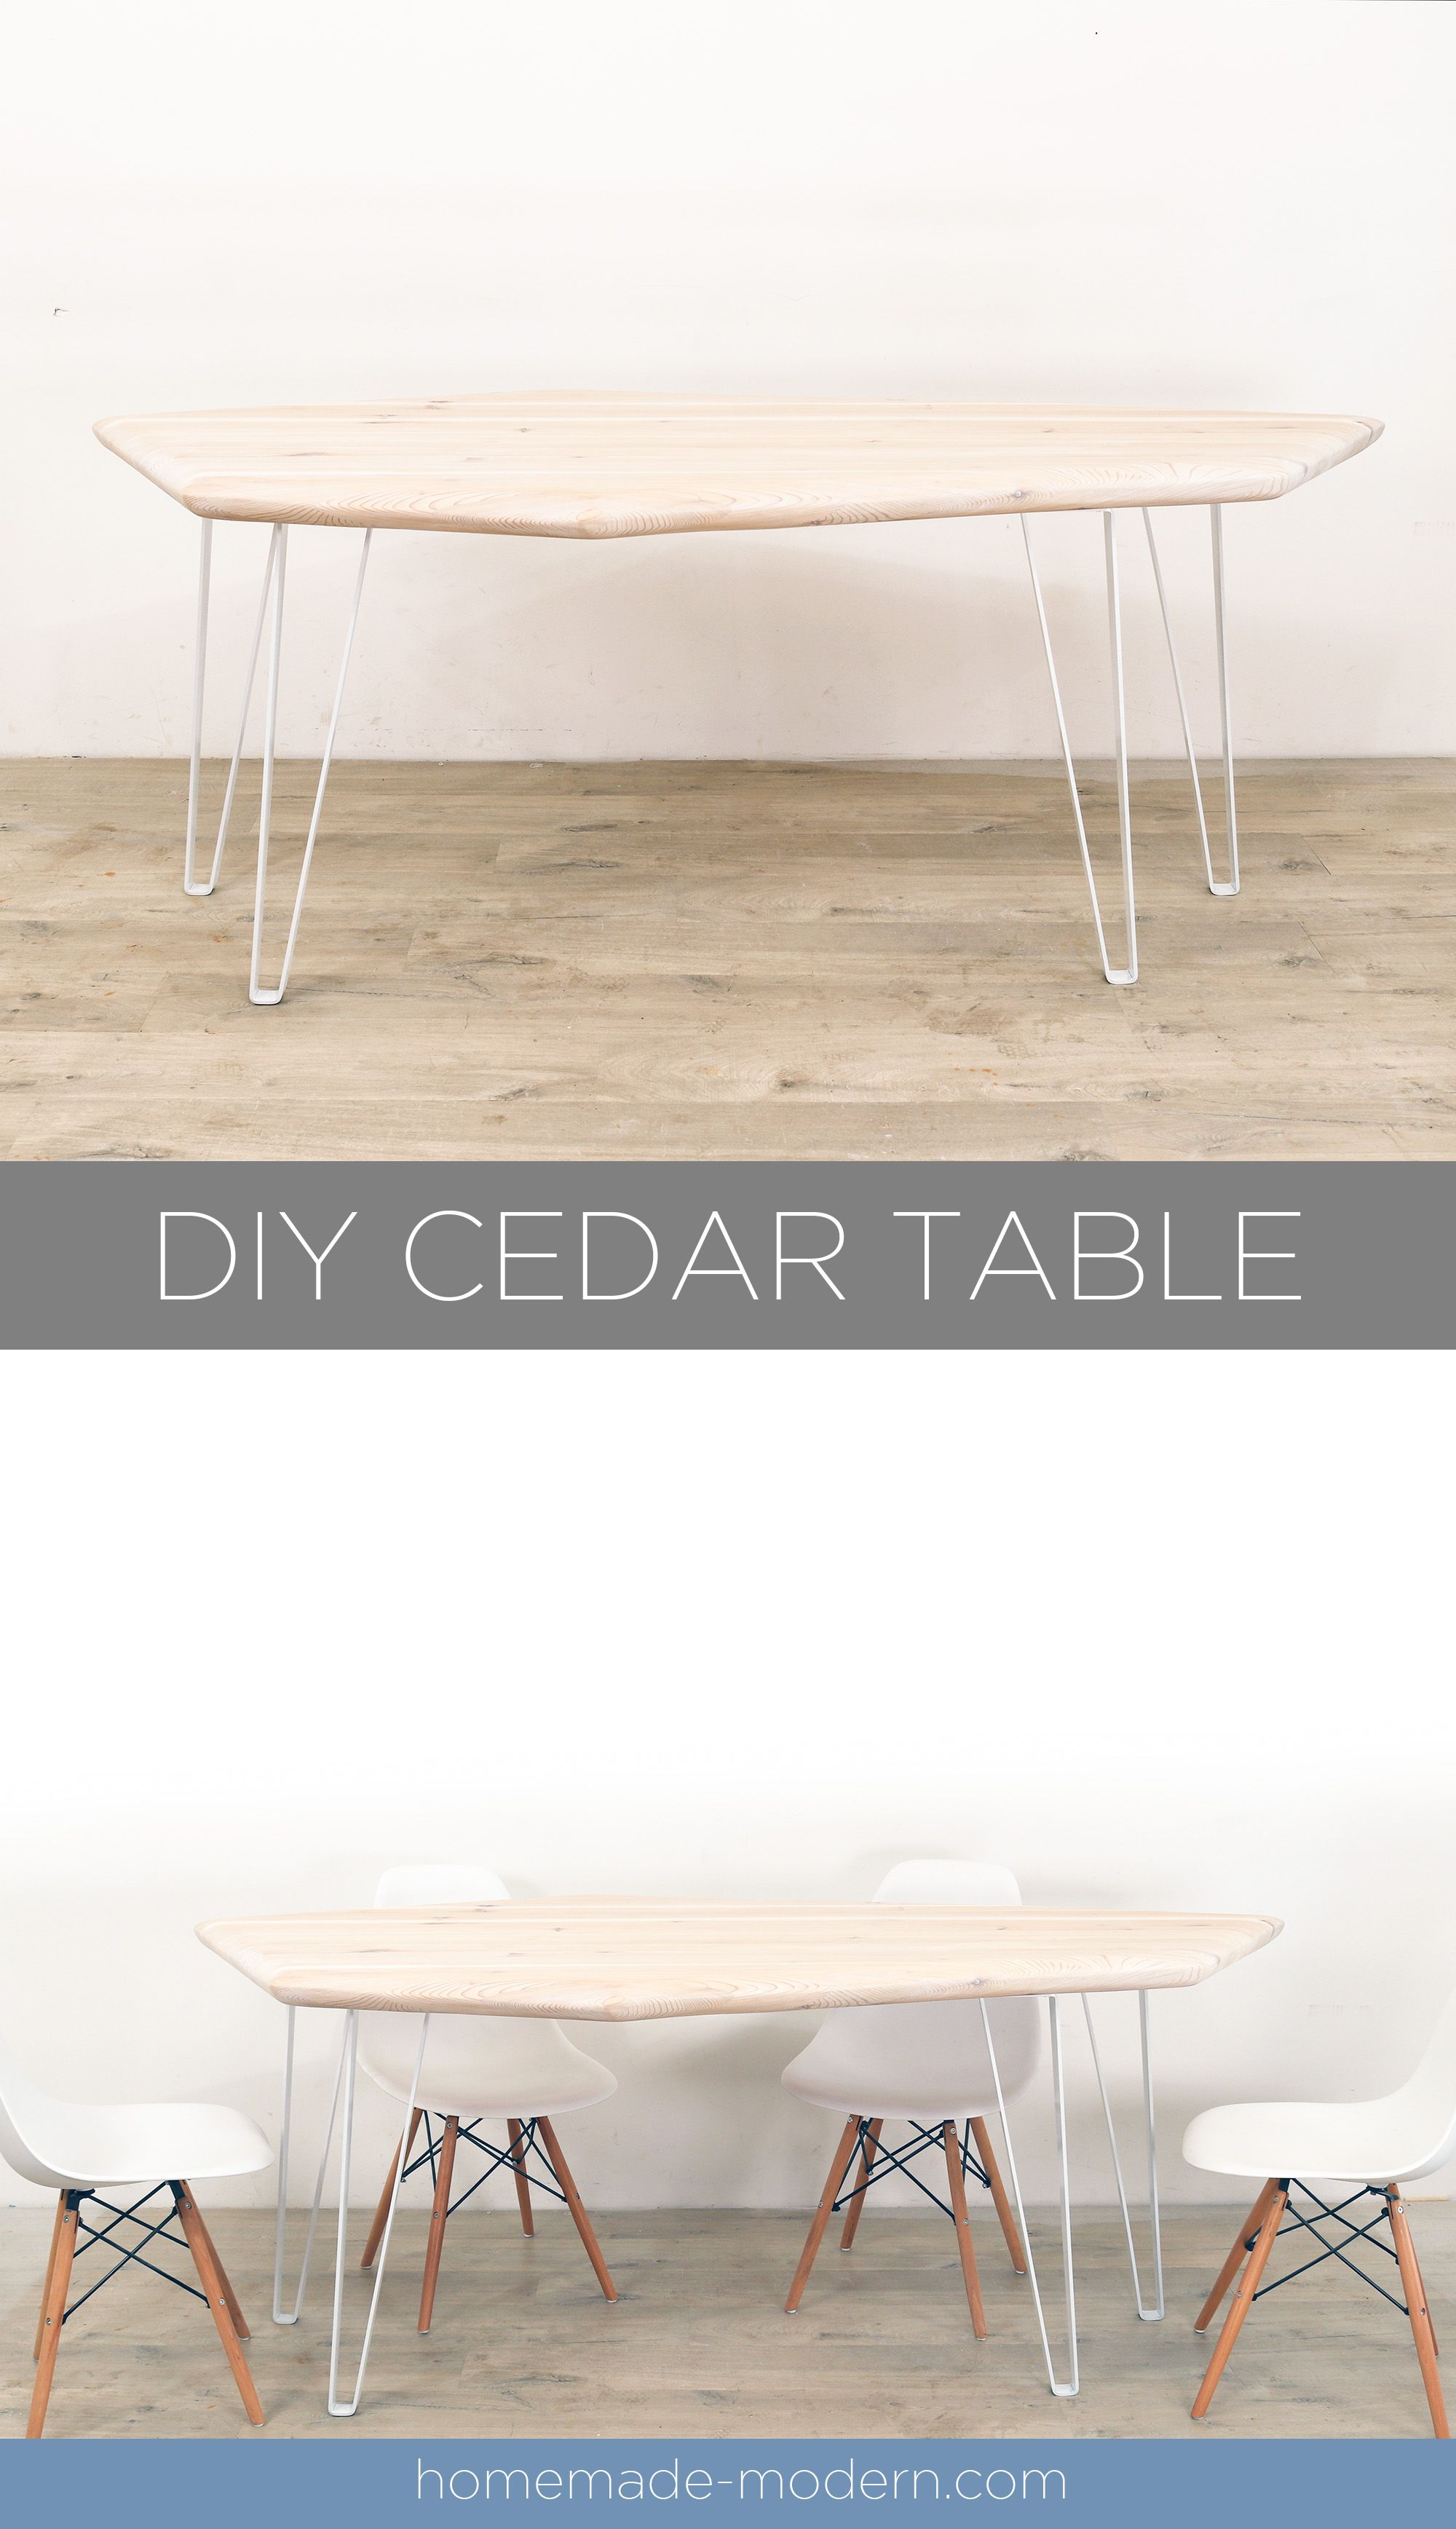 This Modern Geometric Dining Table Was Whitewashed And Made For A Shipping Container House For More Information On This Proj Cedar Table Homemade Modern Table [ 3474 x 2000 Pixel ]